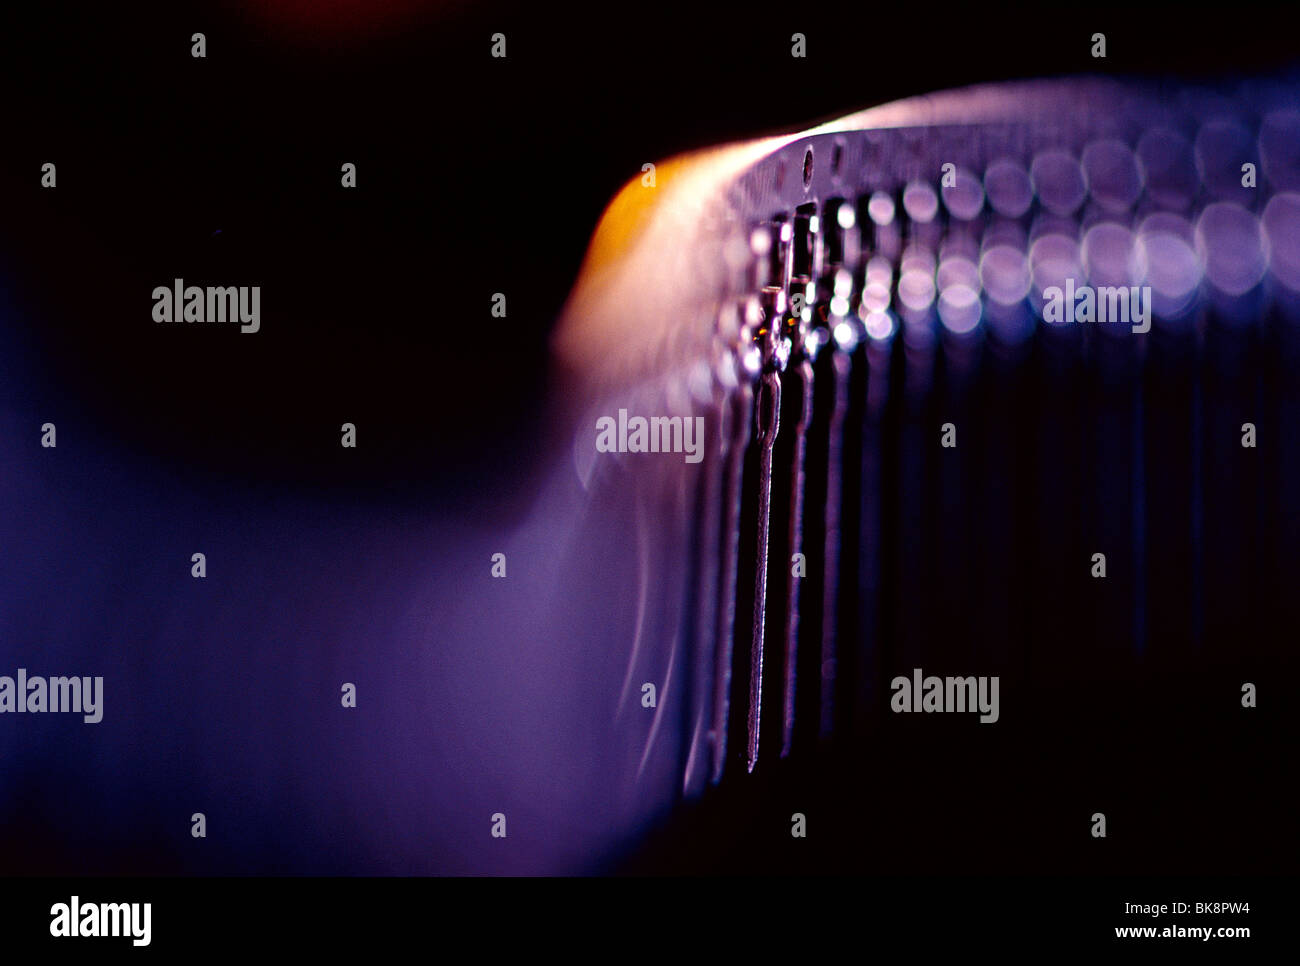 Abstract close-up view of circuit board pins used in computer circuitry. - Stock Image